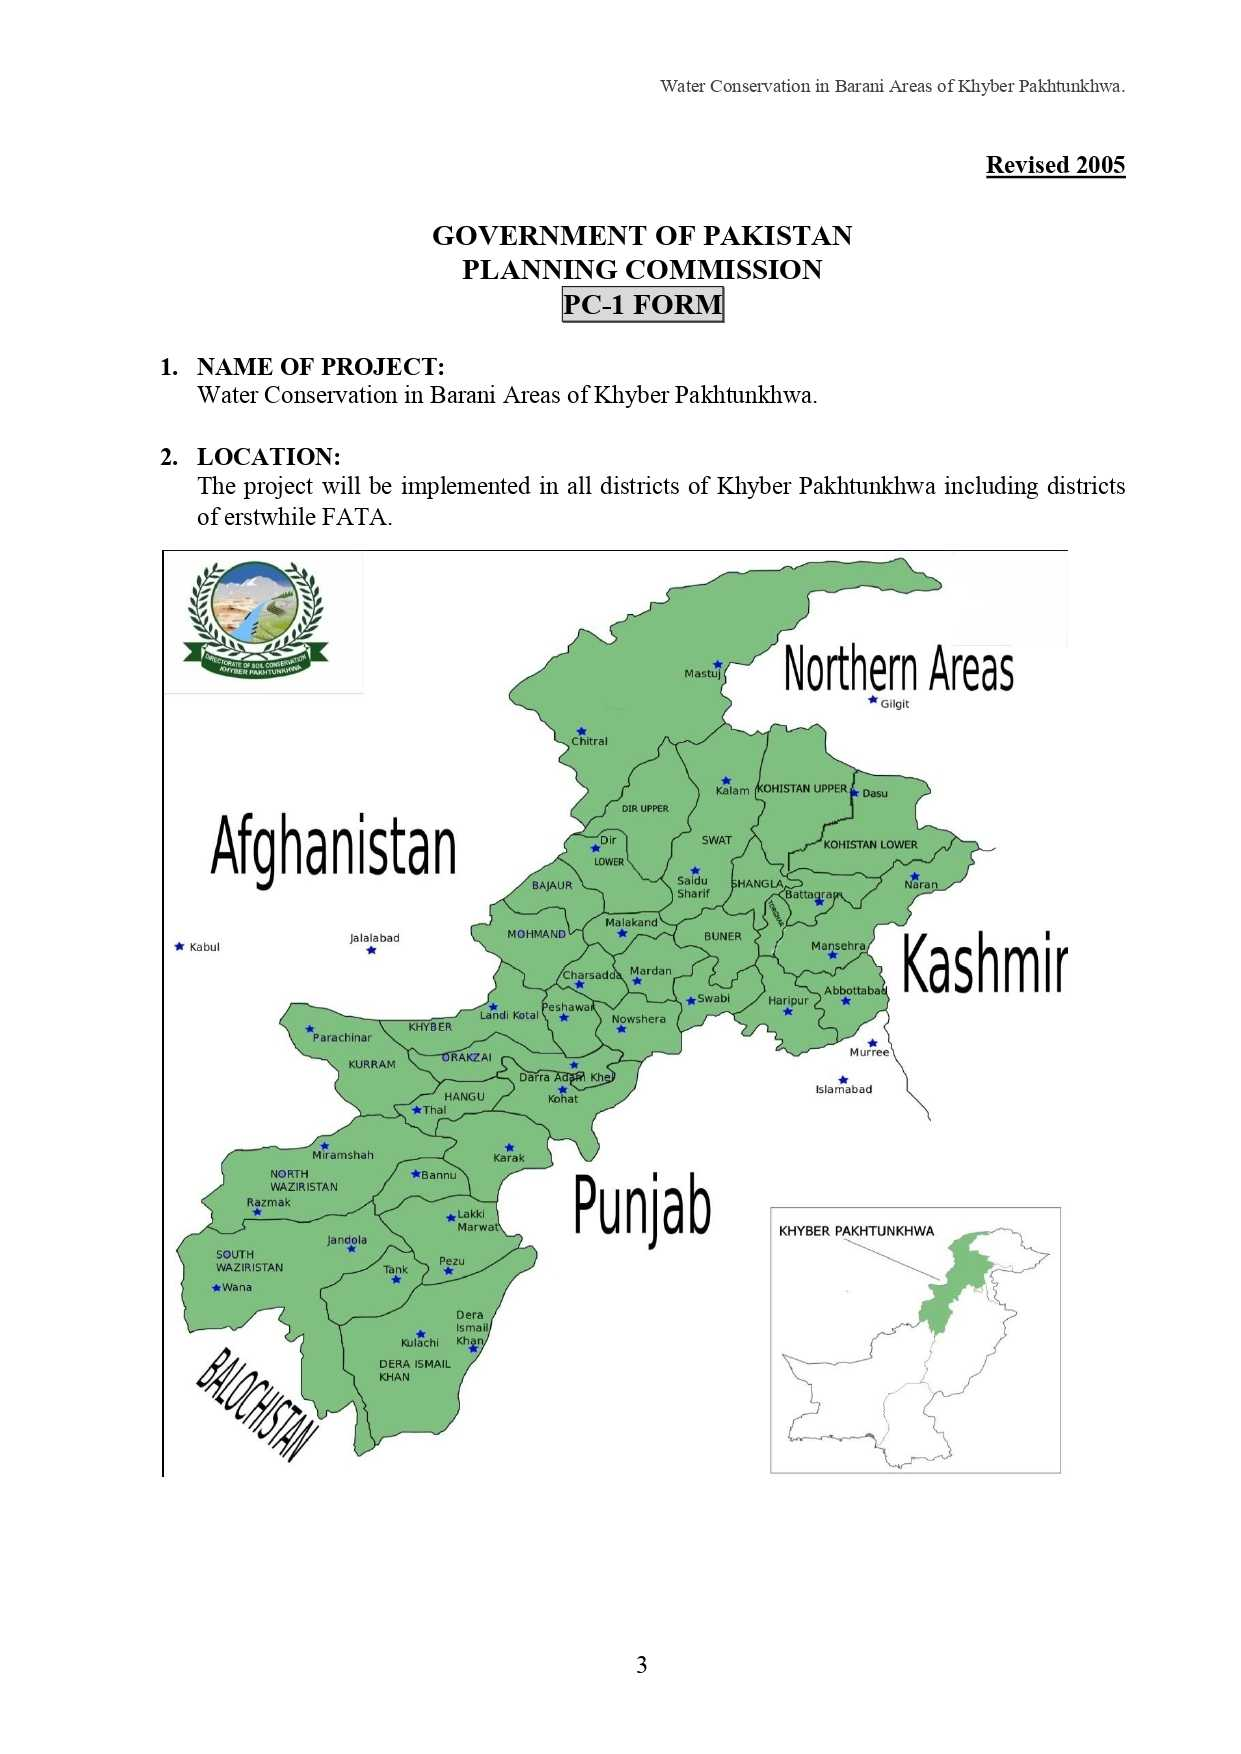 FINAL_PC-I_KP-SWC_Water_Conservation_in_Brani_Areas_of_Khyber_Pakhtunkhwa_May_2nd__2019_(WITHOUT_ANNEXURES)_page-0004